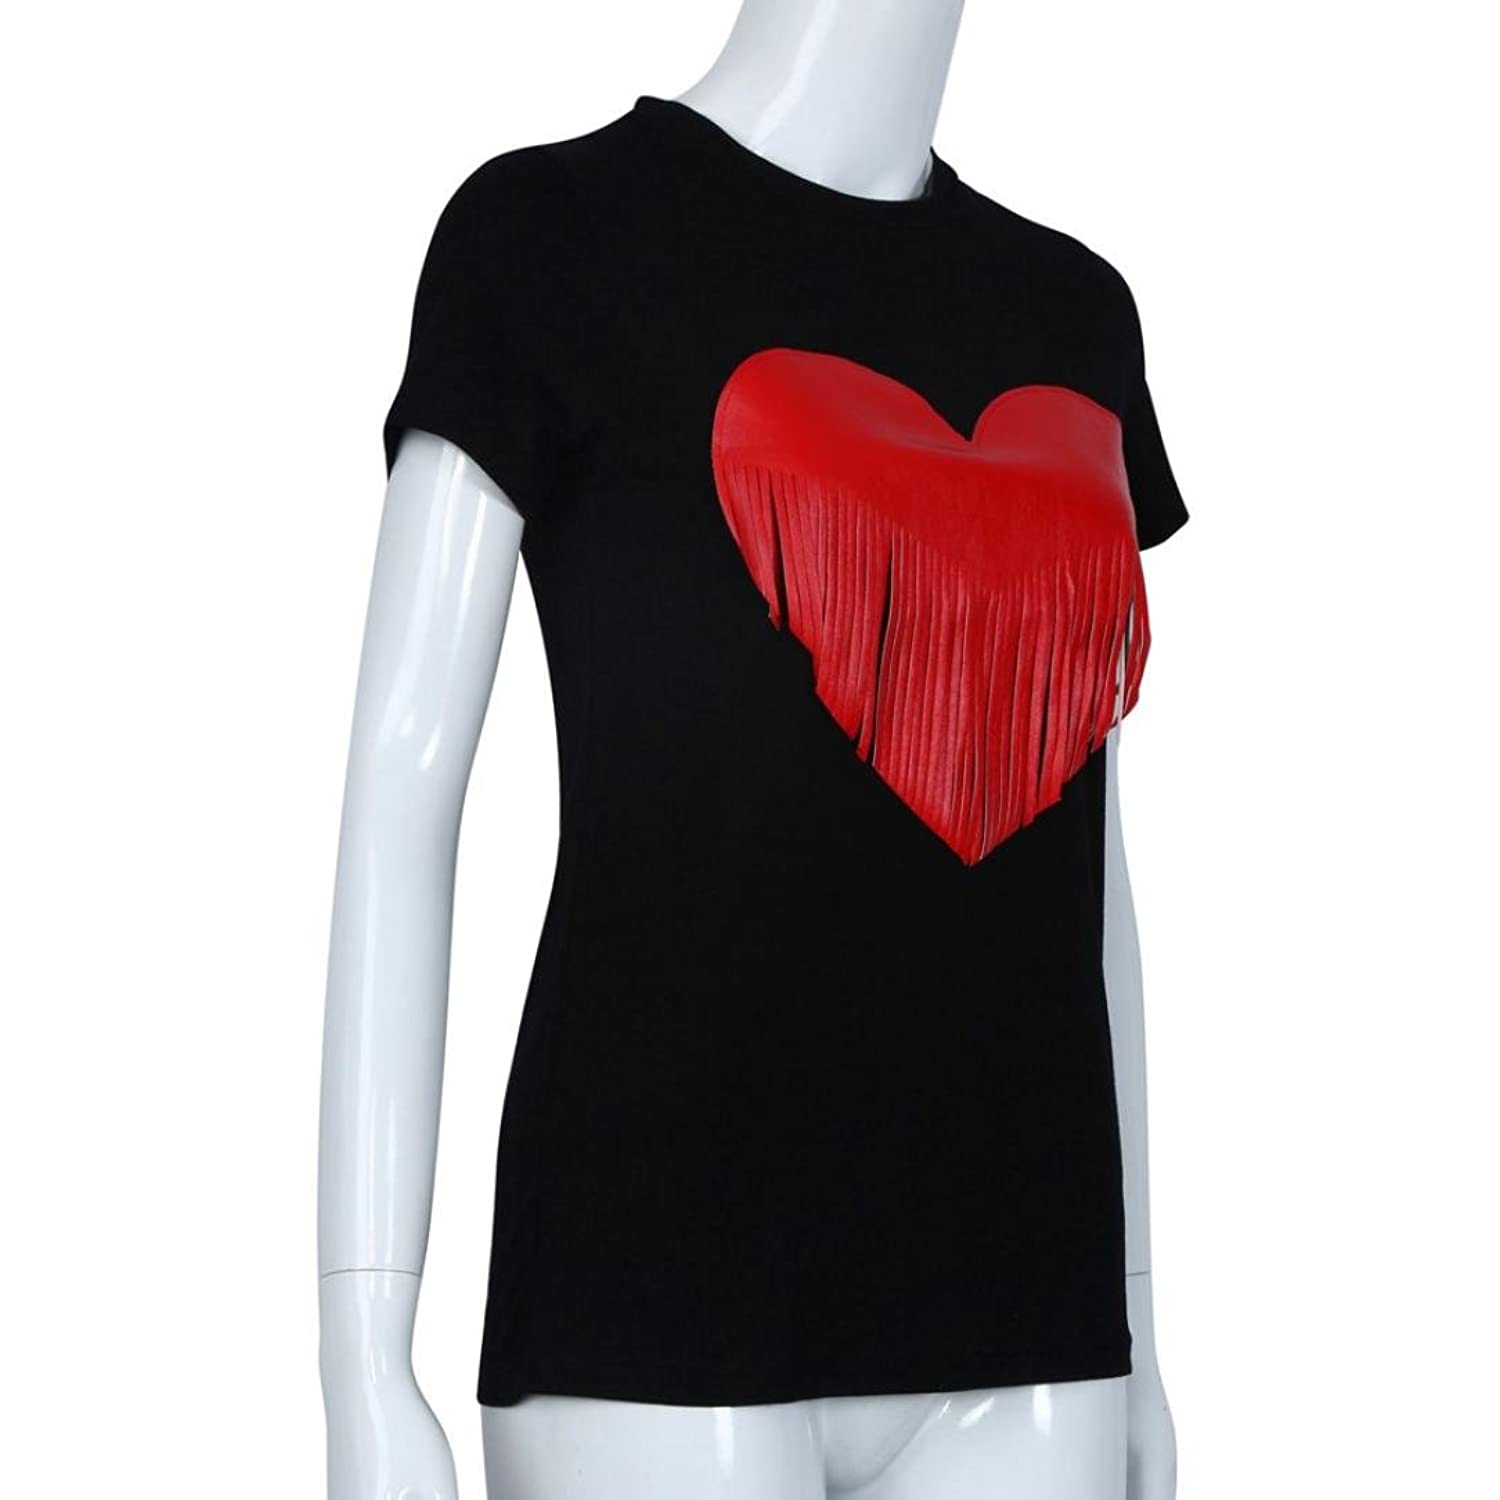 Amazon.com: DondPO 2018 Fashion Womens Lovely Red Heart Tassel Printed Short Sleeve Cotton T Shirt Casual T-Shirt Loose Summer Blouse Top Clothes: Clothing